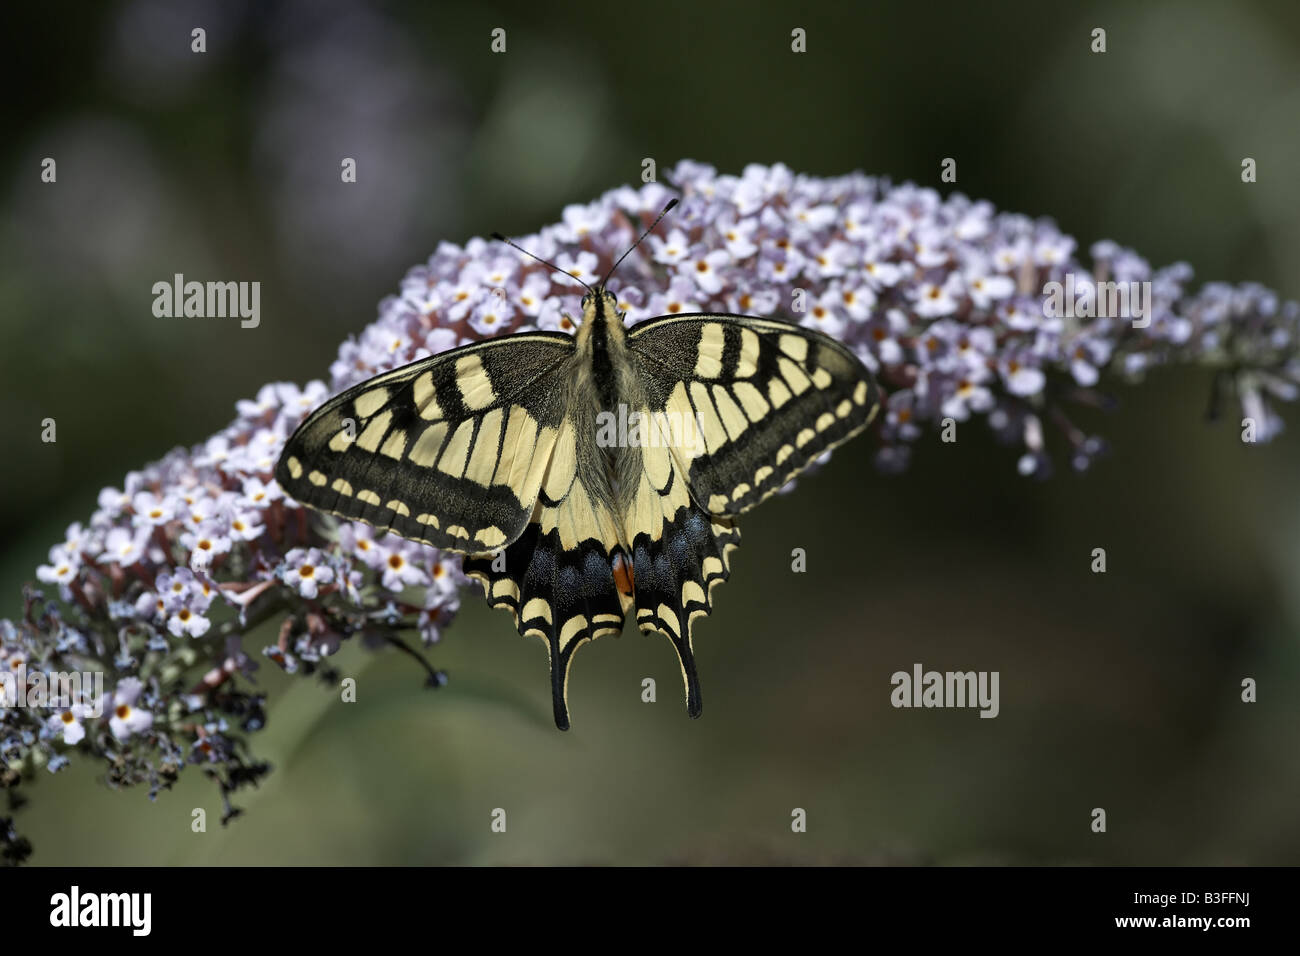 Swallowtail butterfly Papilio machaon feeding on nectar on lilac bloom Verfeil midi pyrenees France - Stock Image